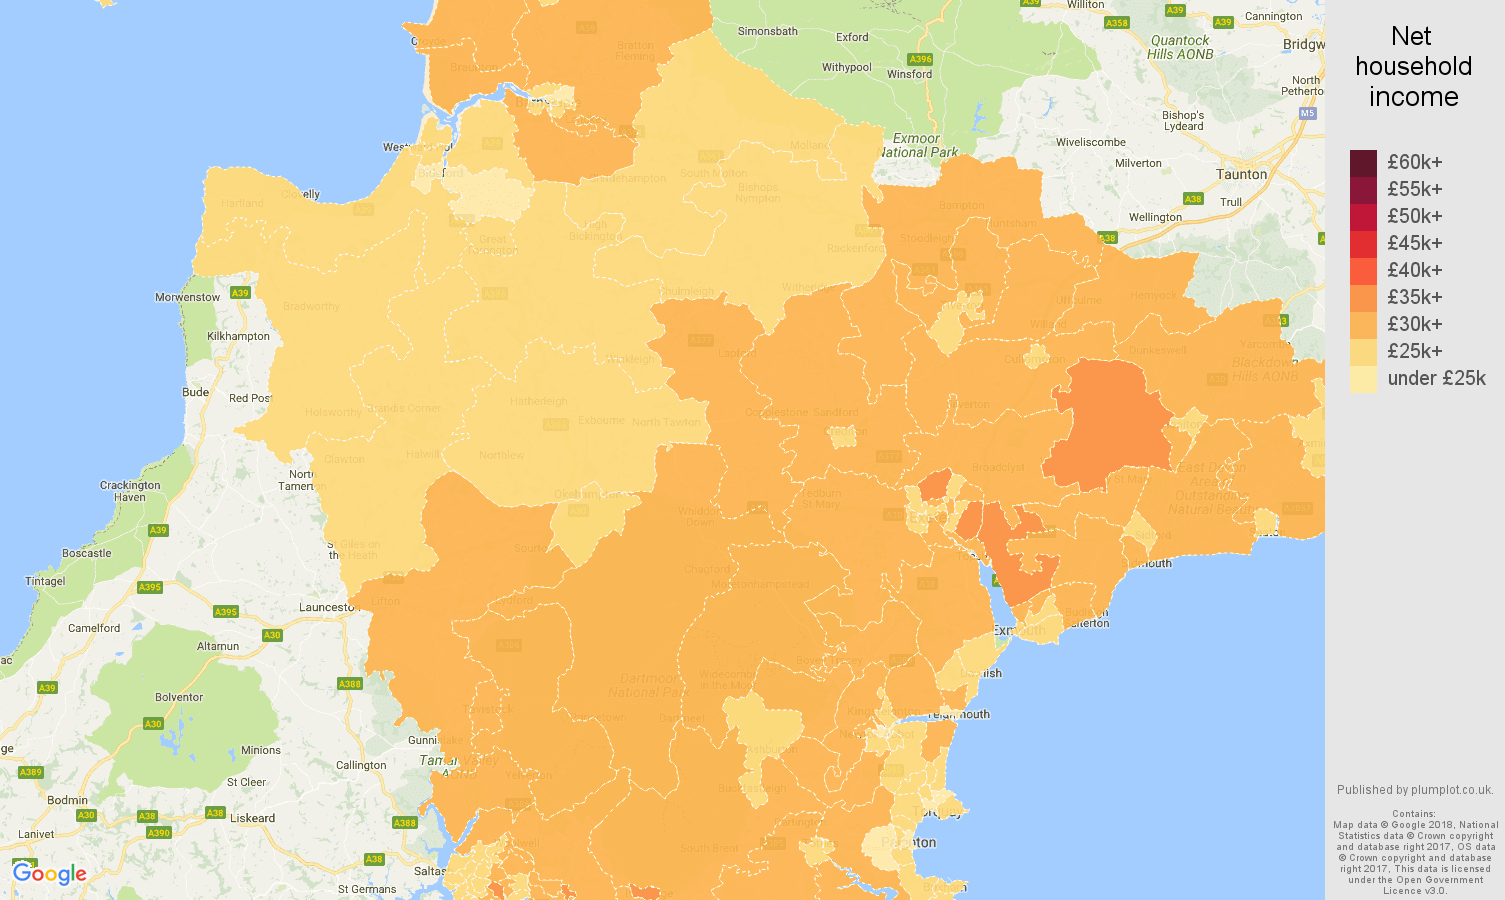 Devon net household income map